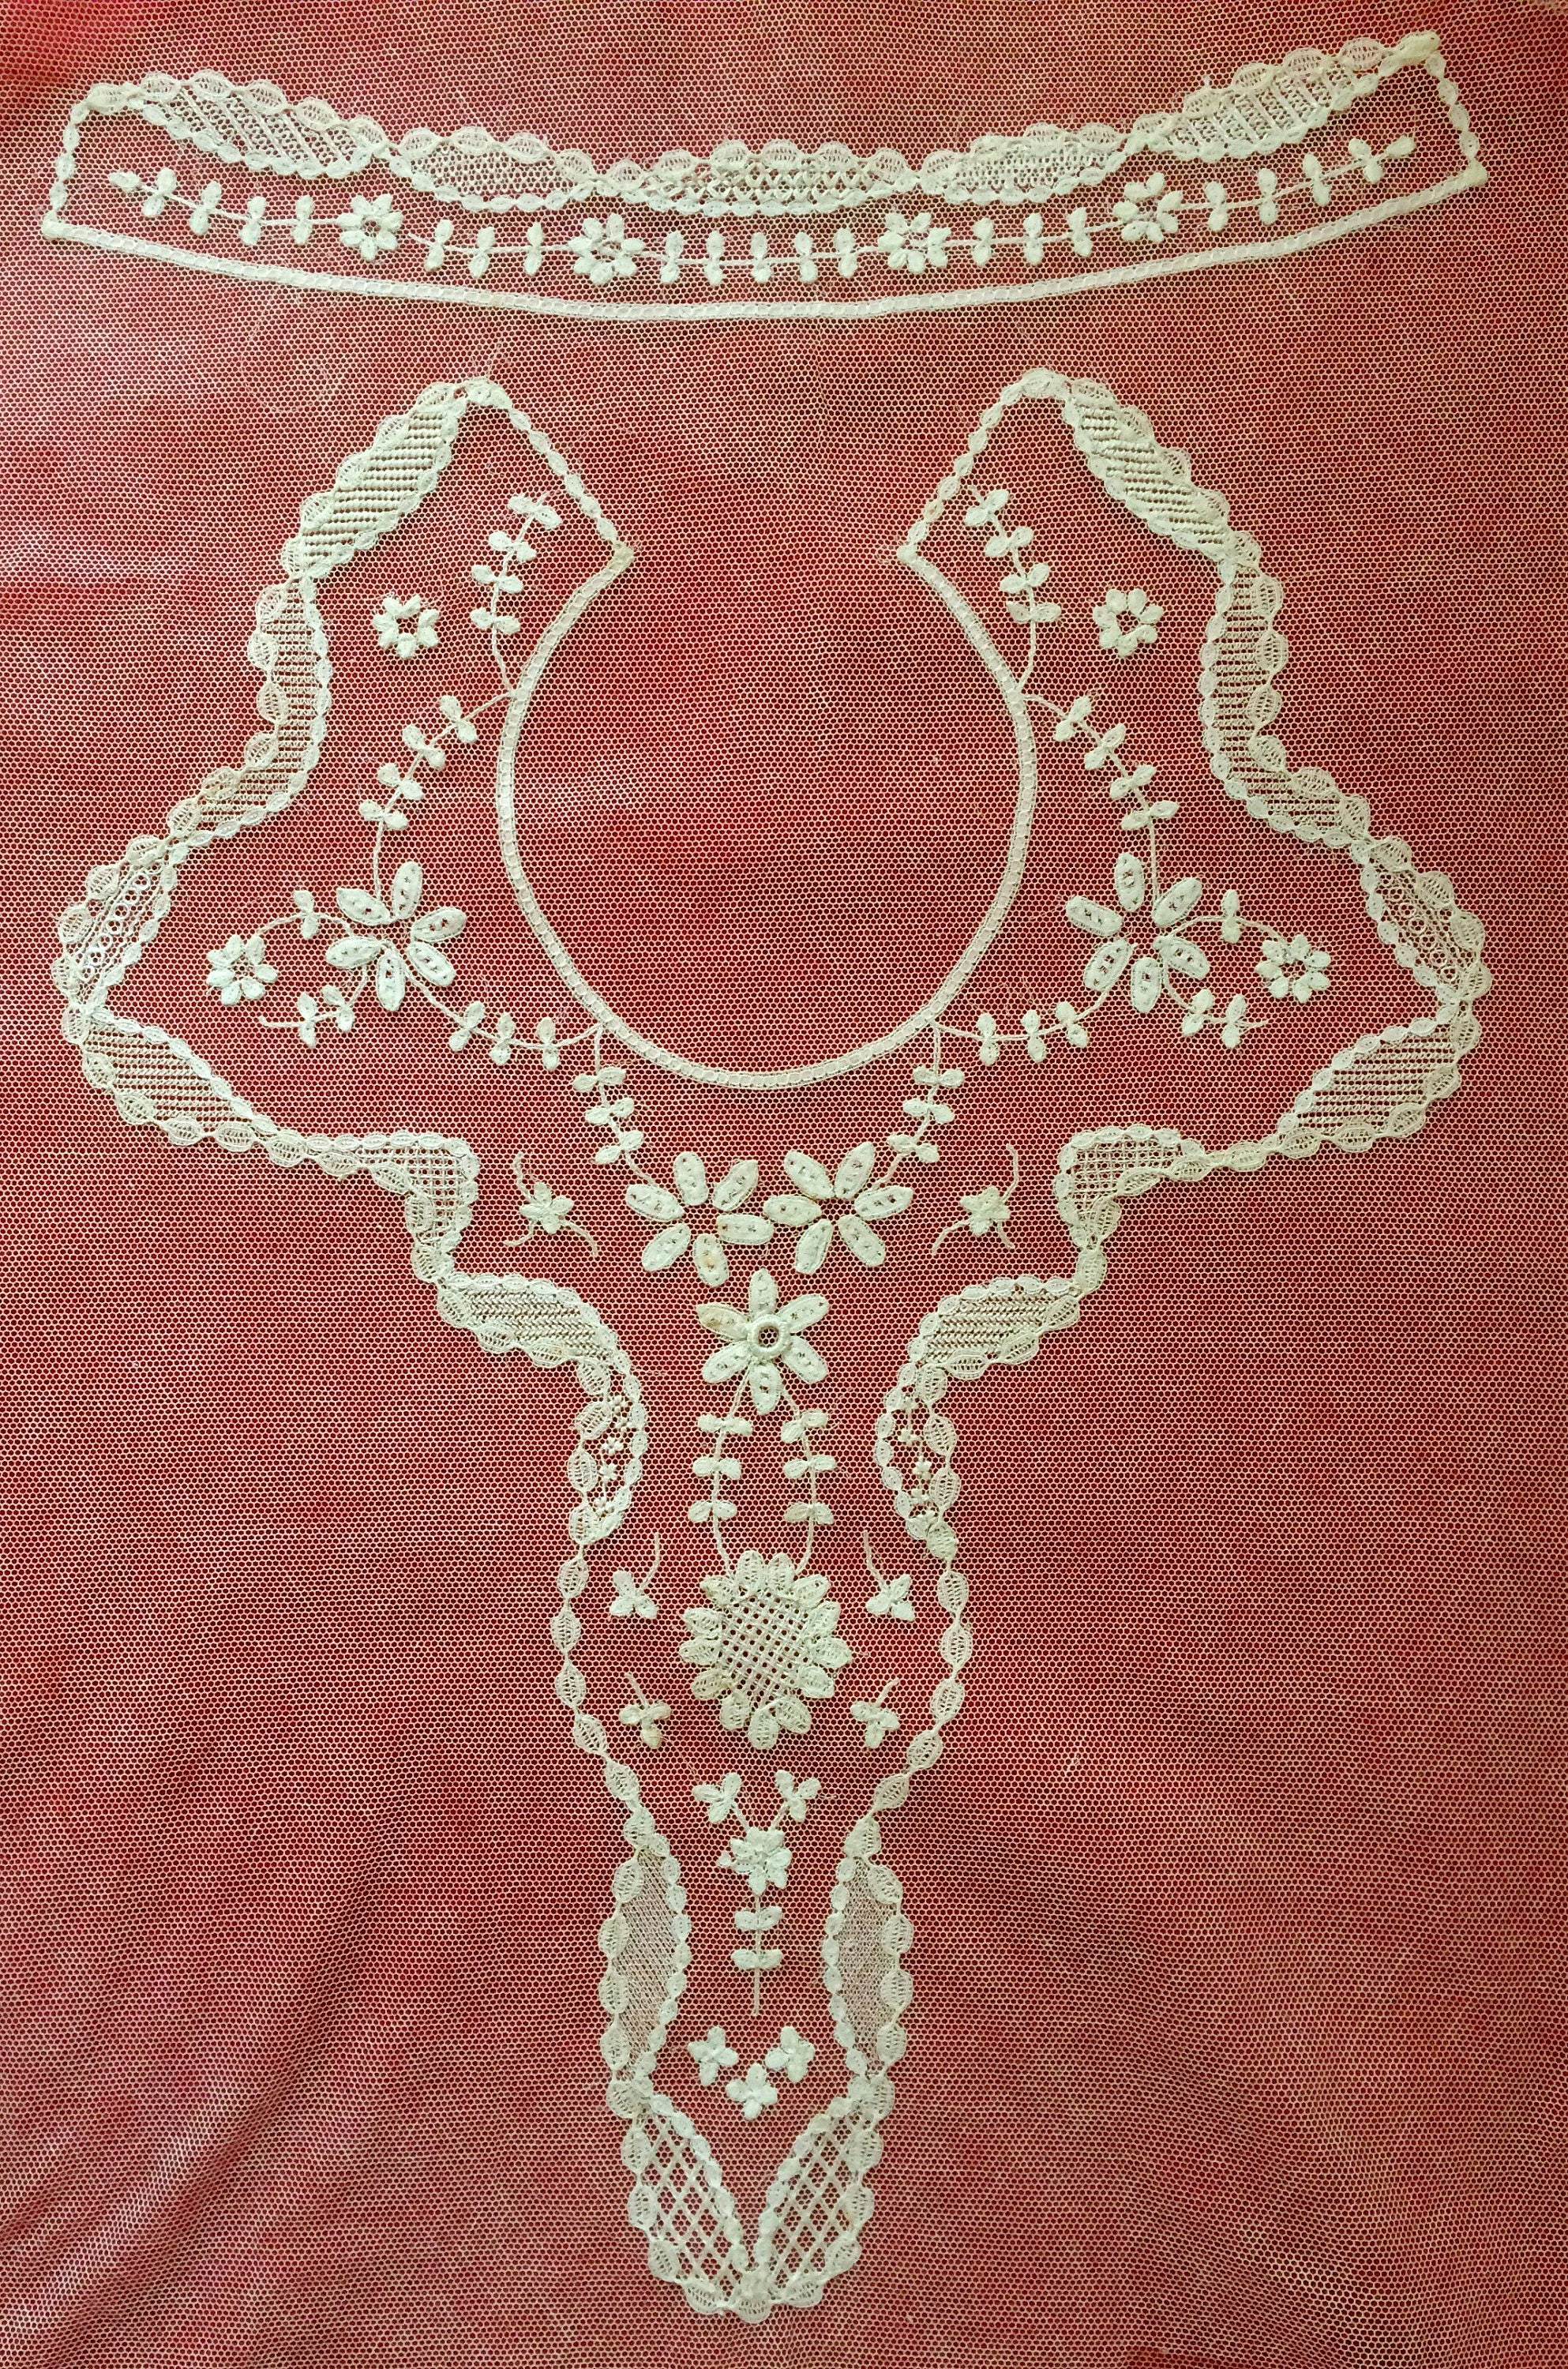 7f249a1ef87f Antique 1800s Rare Pattern   Completed Princess Silk Lace Bridal Bodice  Applique work Ex Museum. gallery photo ...